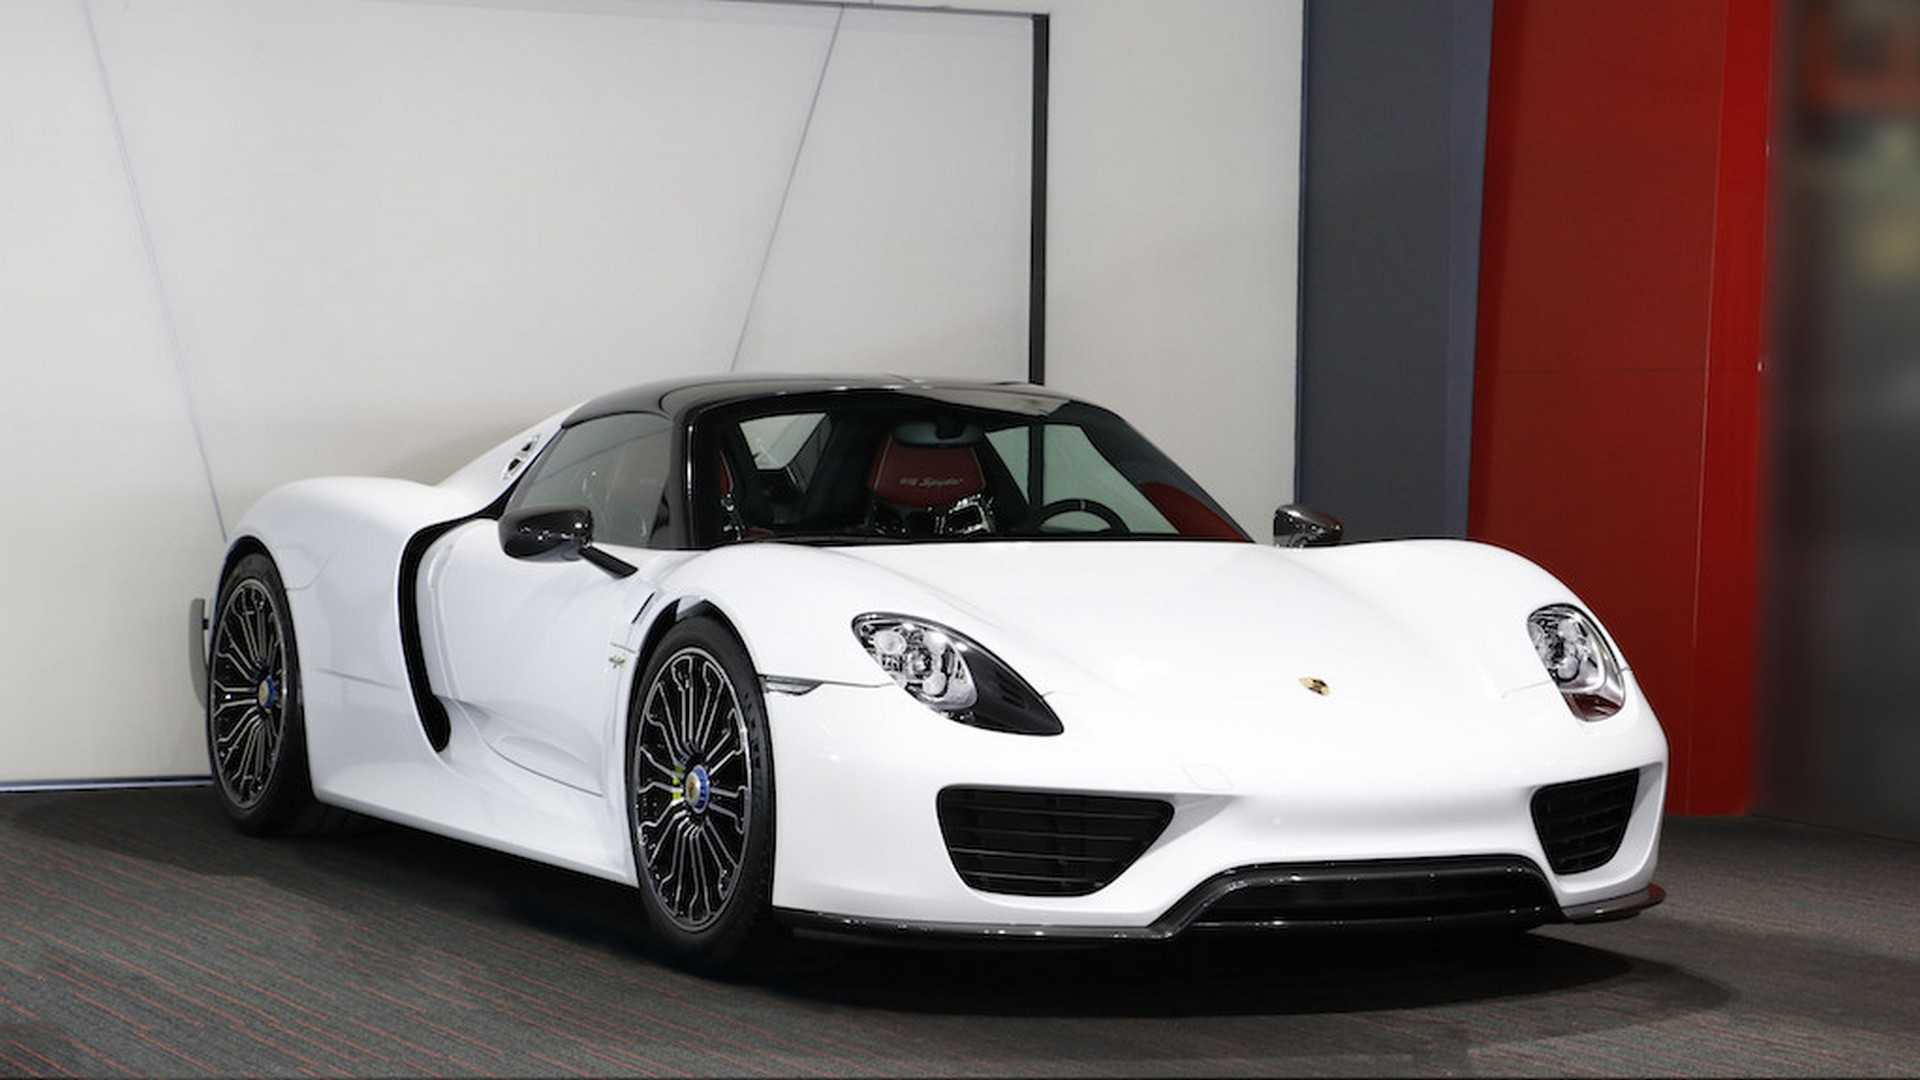 Porsche 918 Spyder For Sale >> You Can Still Buy A New Porsche 918 Spyder 61 Photos